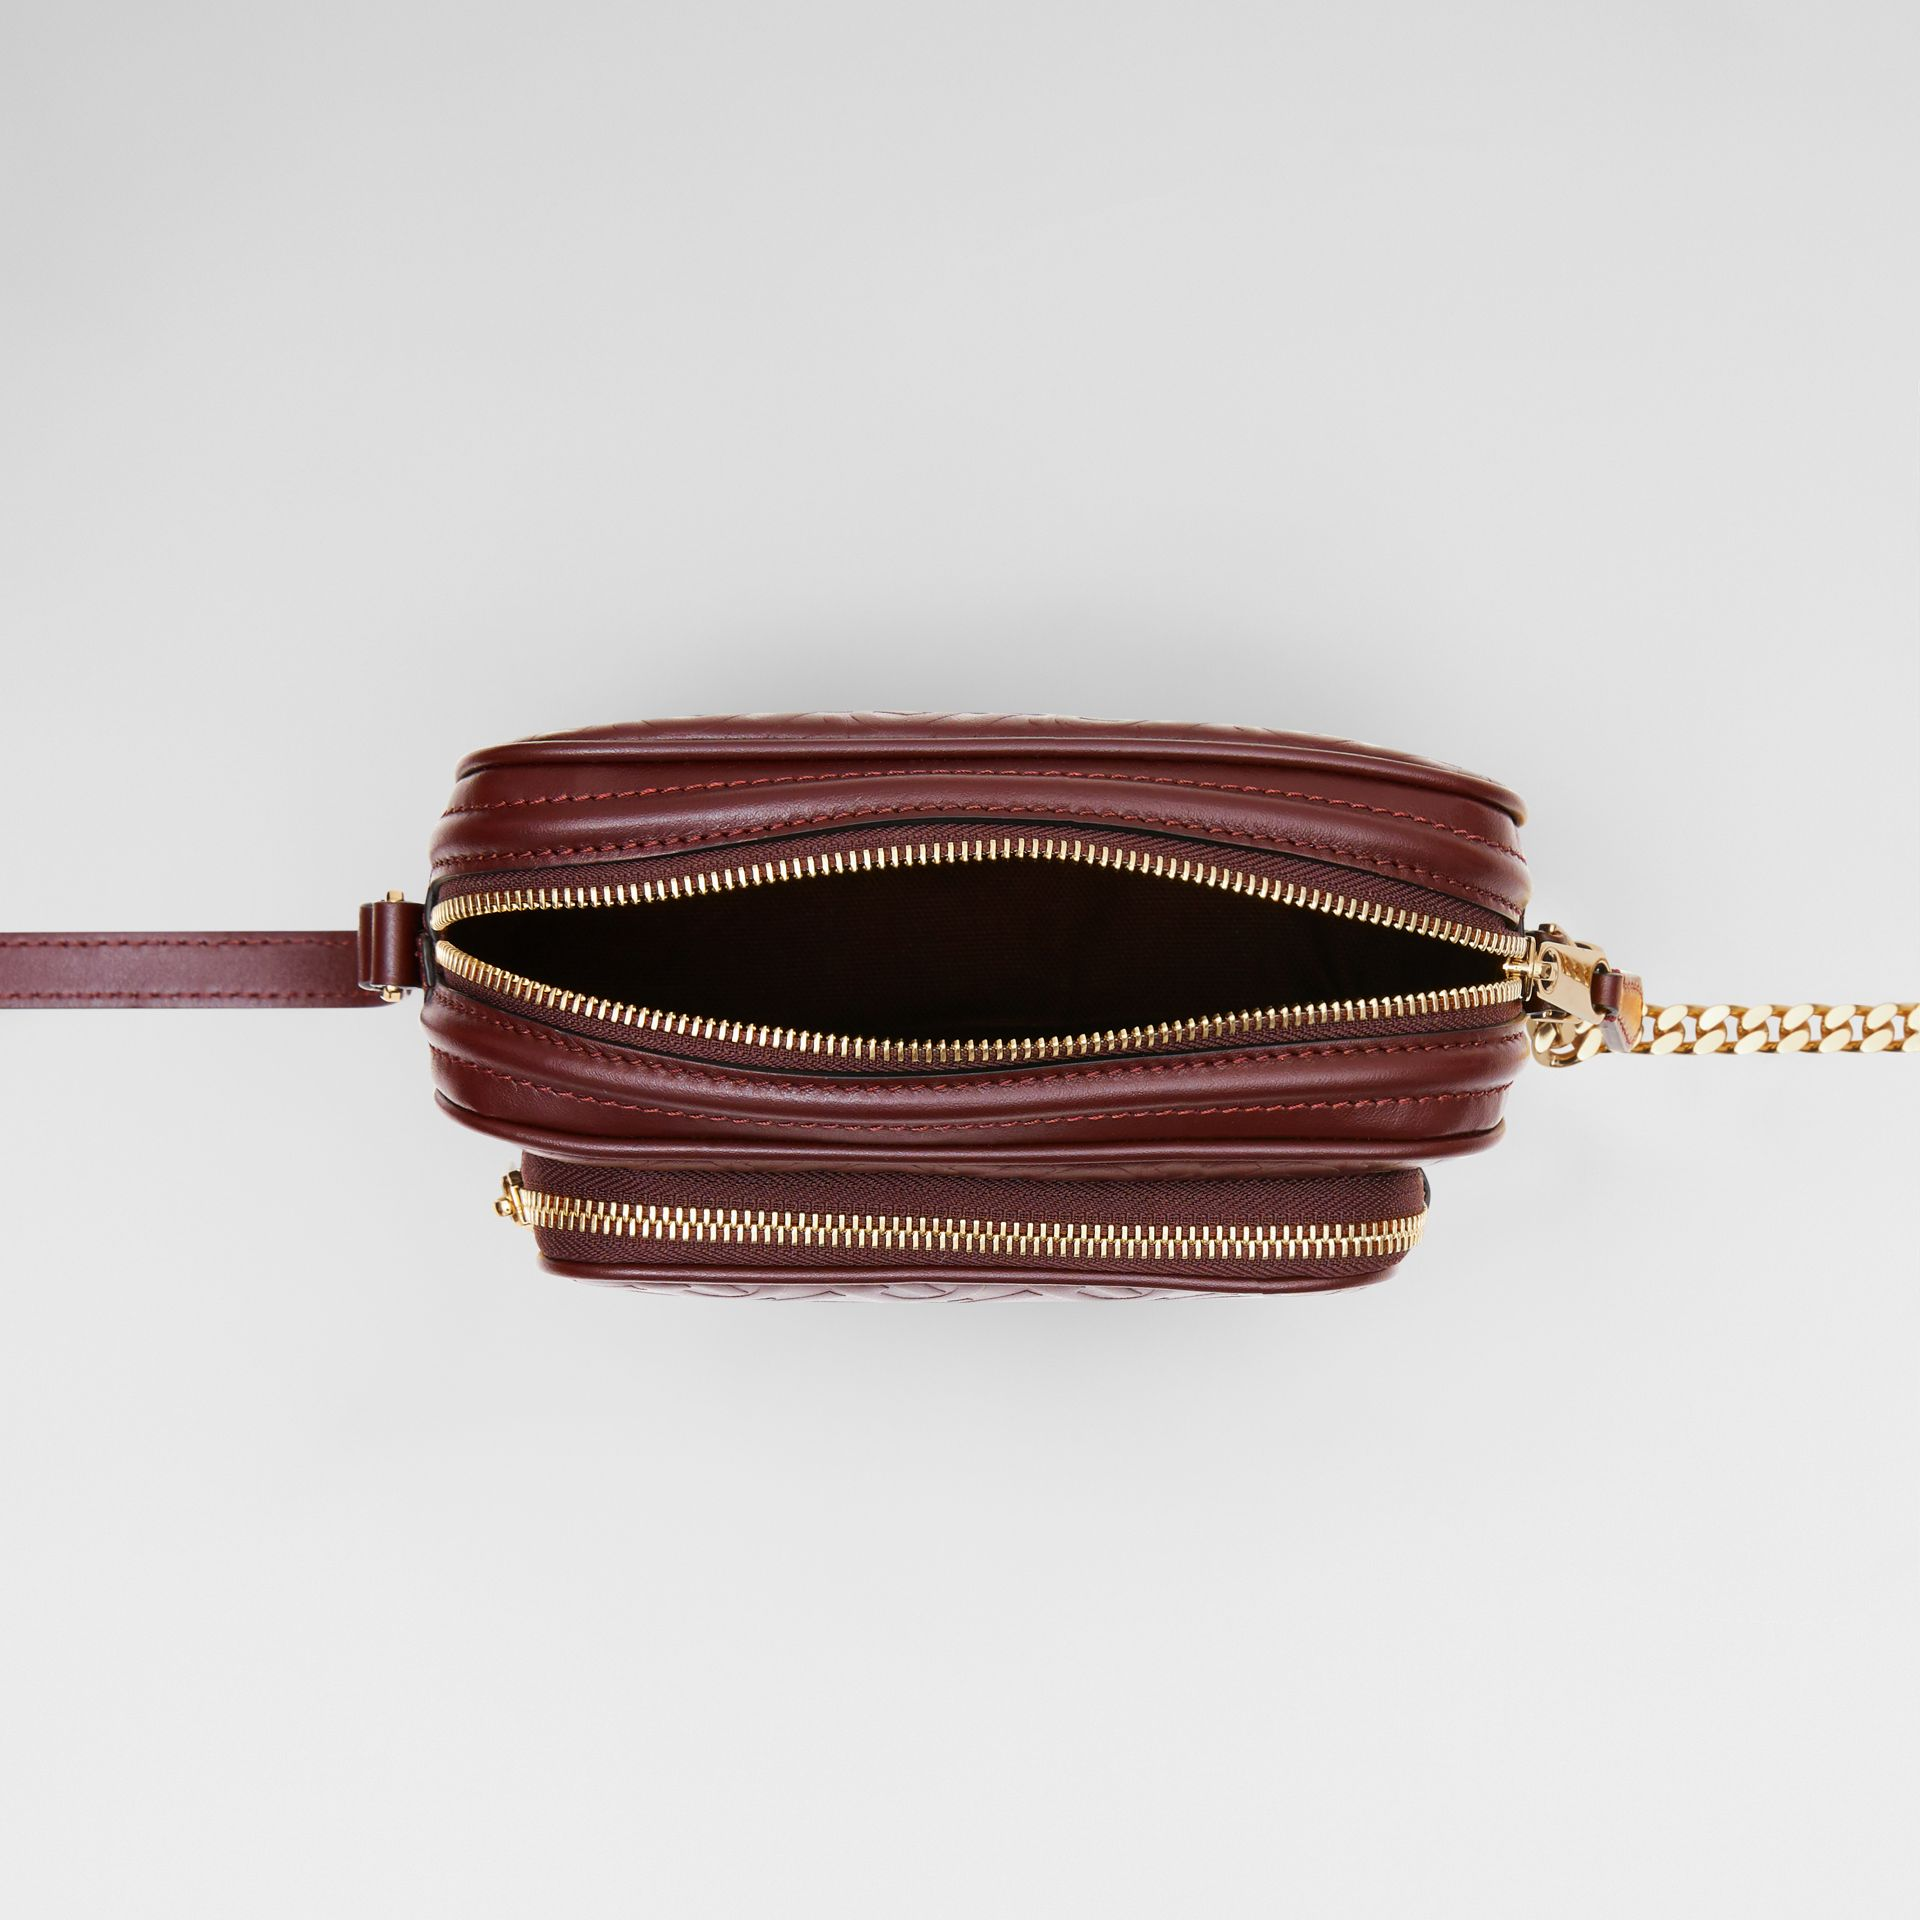 Monogram Leather Camera Bag in Dark Burgundy - Women | Burberry United States - gallery image 3